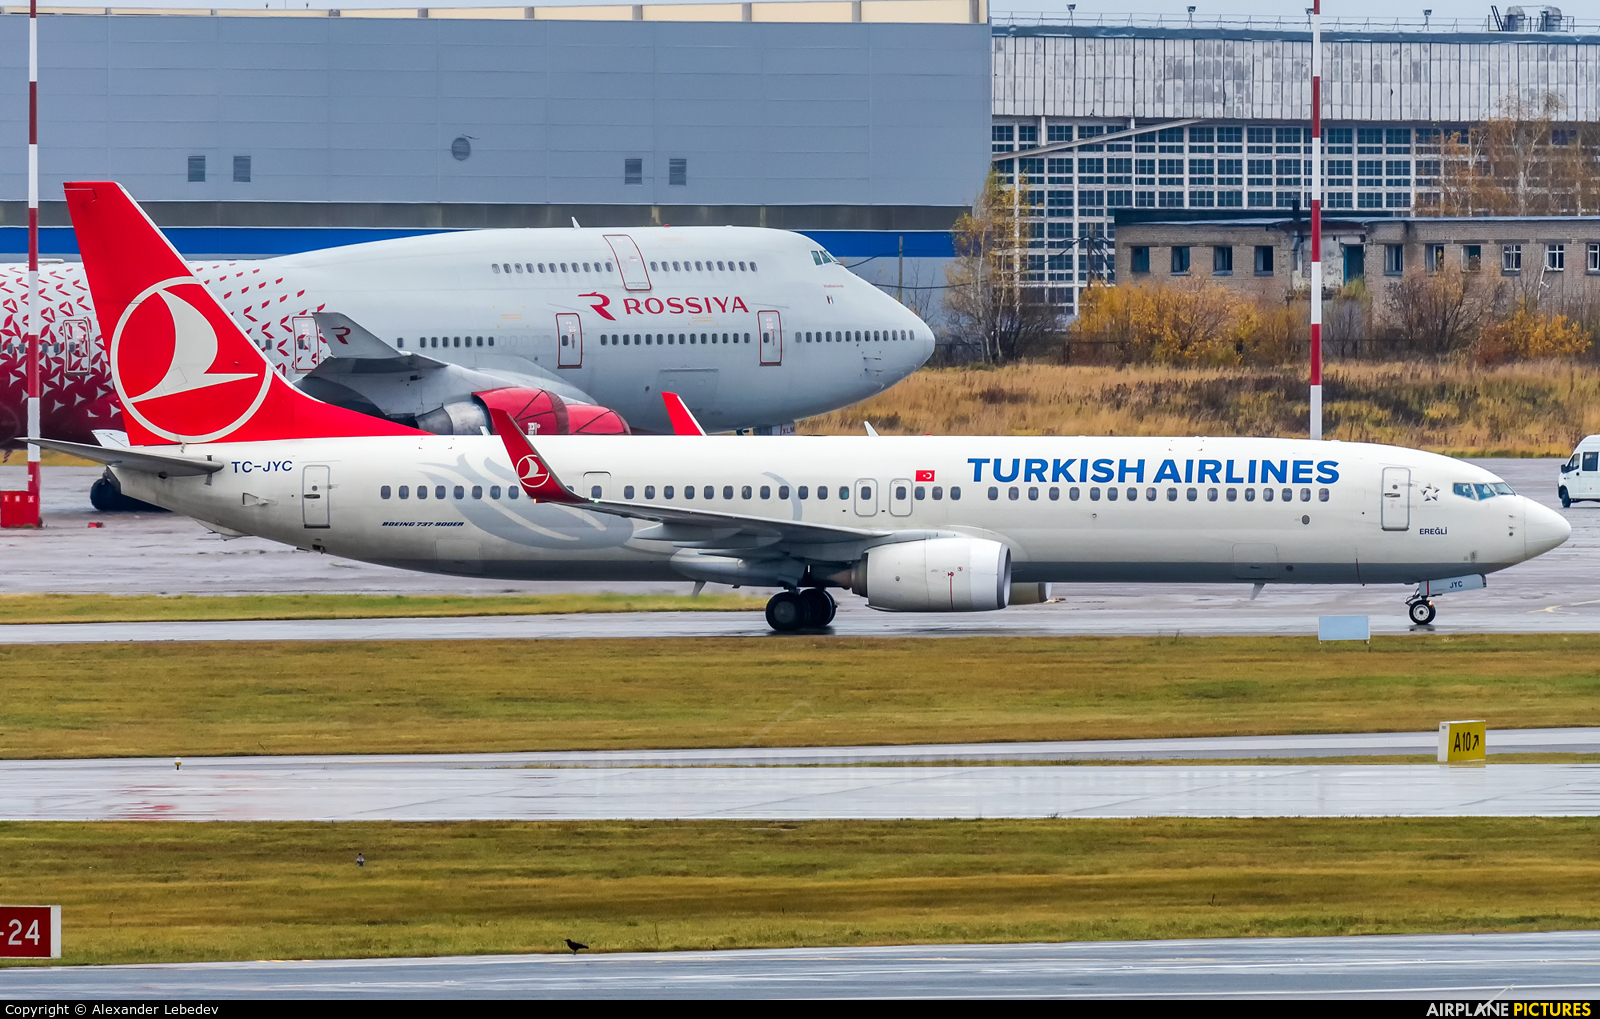 Turkish Airlines TC-JYC aircraft at Moscow - Vnukovo